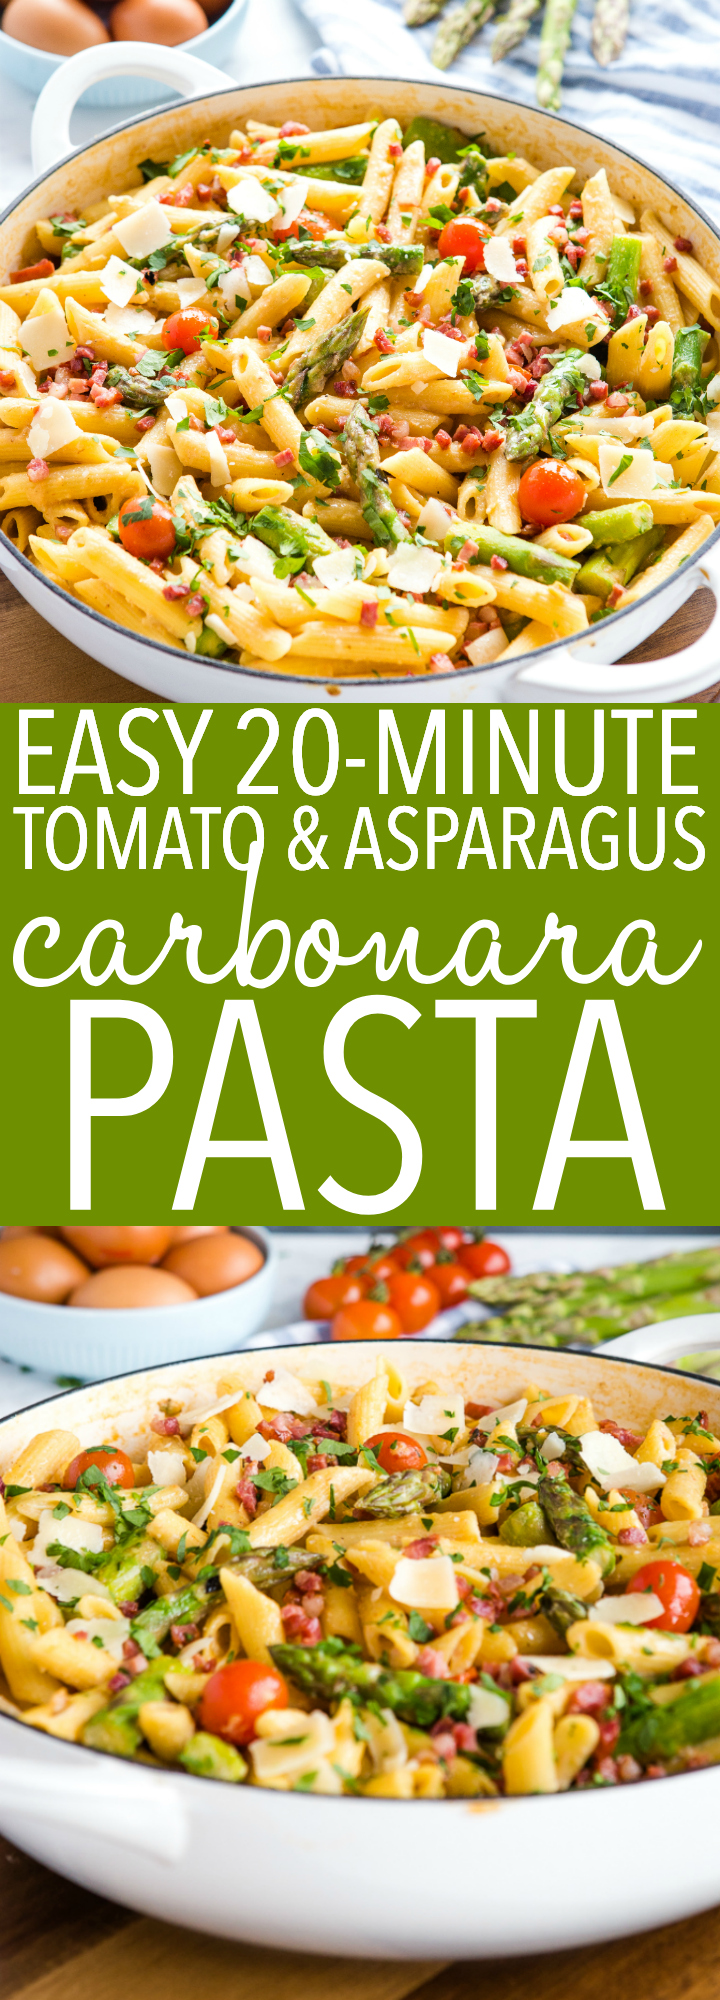 This Easy 20-Minute Tomato Asparagus Carbonara Pasta is the perfect spring-inspired dinner recipe with fresh tomatoes, asparagus & light, creamy sauce. Recipe from thebusybaker.ca! #pasta #carbonara #easy #recipe #veggies #bacon #asparagus #cherrytomatoes #tomatoes #herbs #fresh #family #meal #eggs #protein #healthy via @busybakerblog